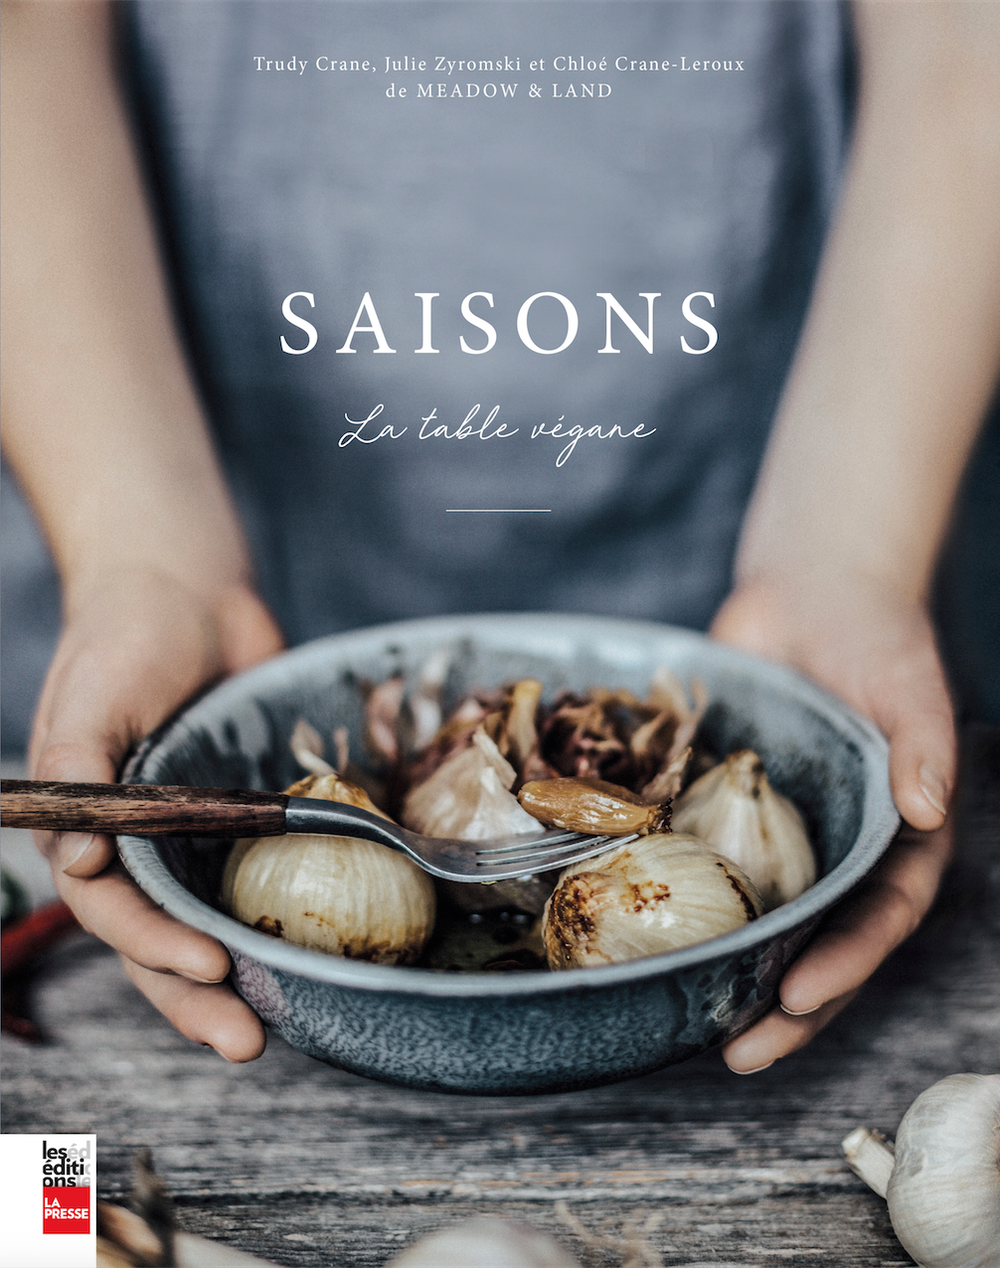 - ....Saisons, la table végane: Cooking to the rhythm of the seasons, is what is proposed in the magnificent book